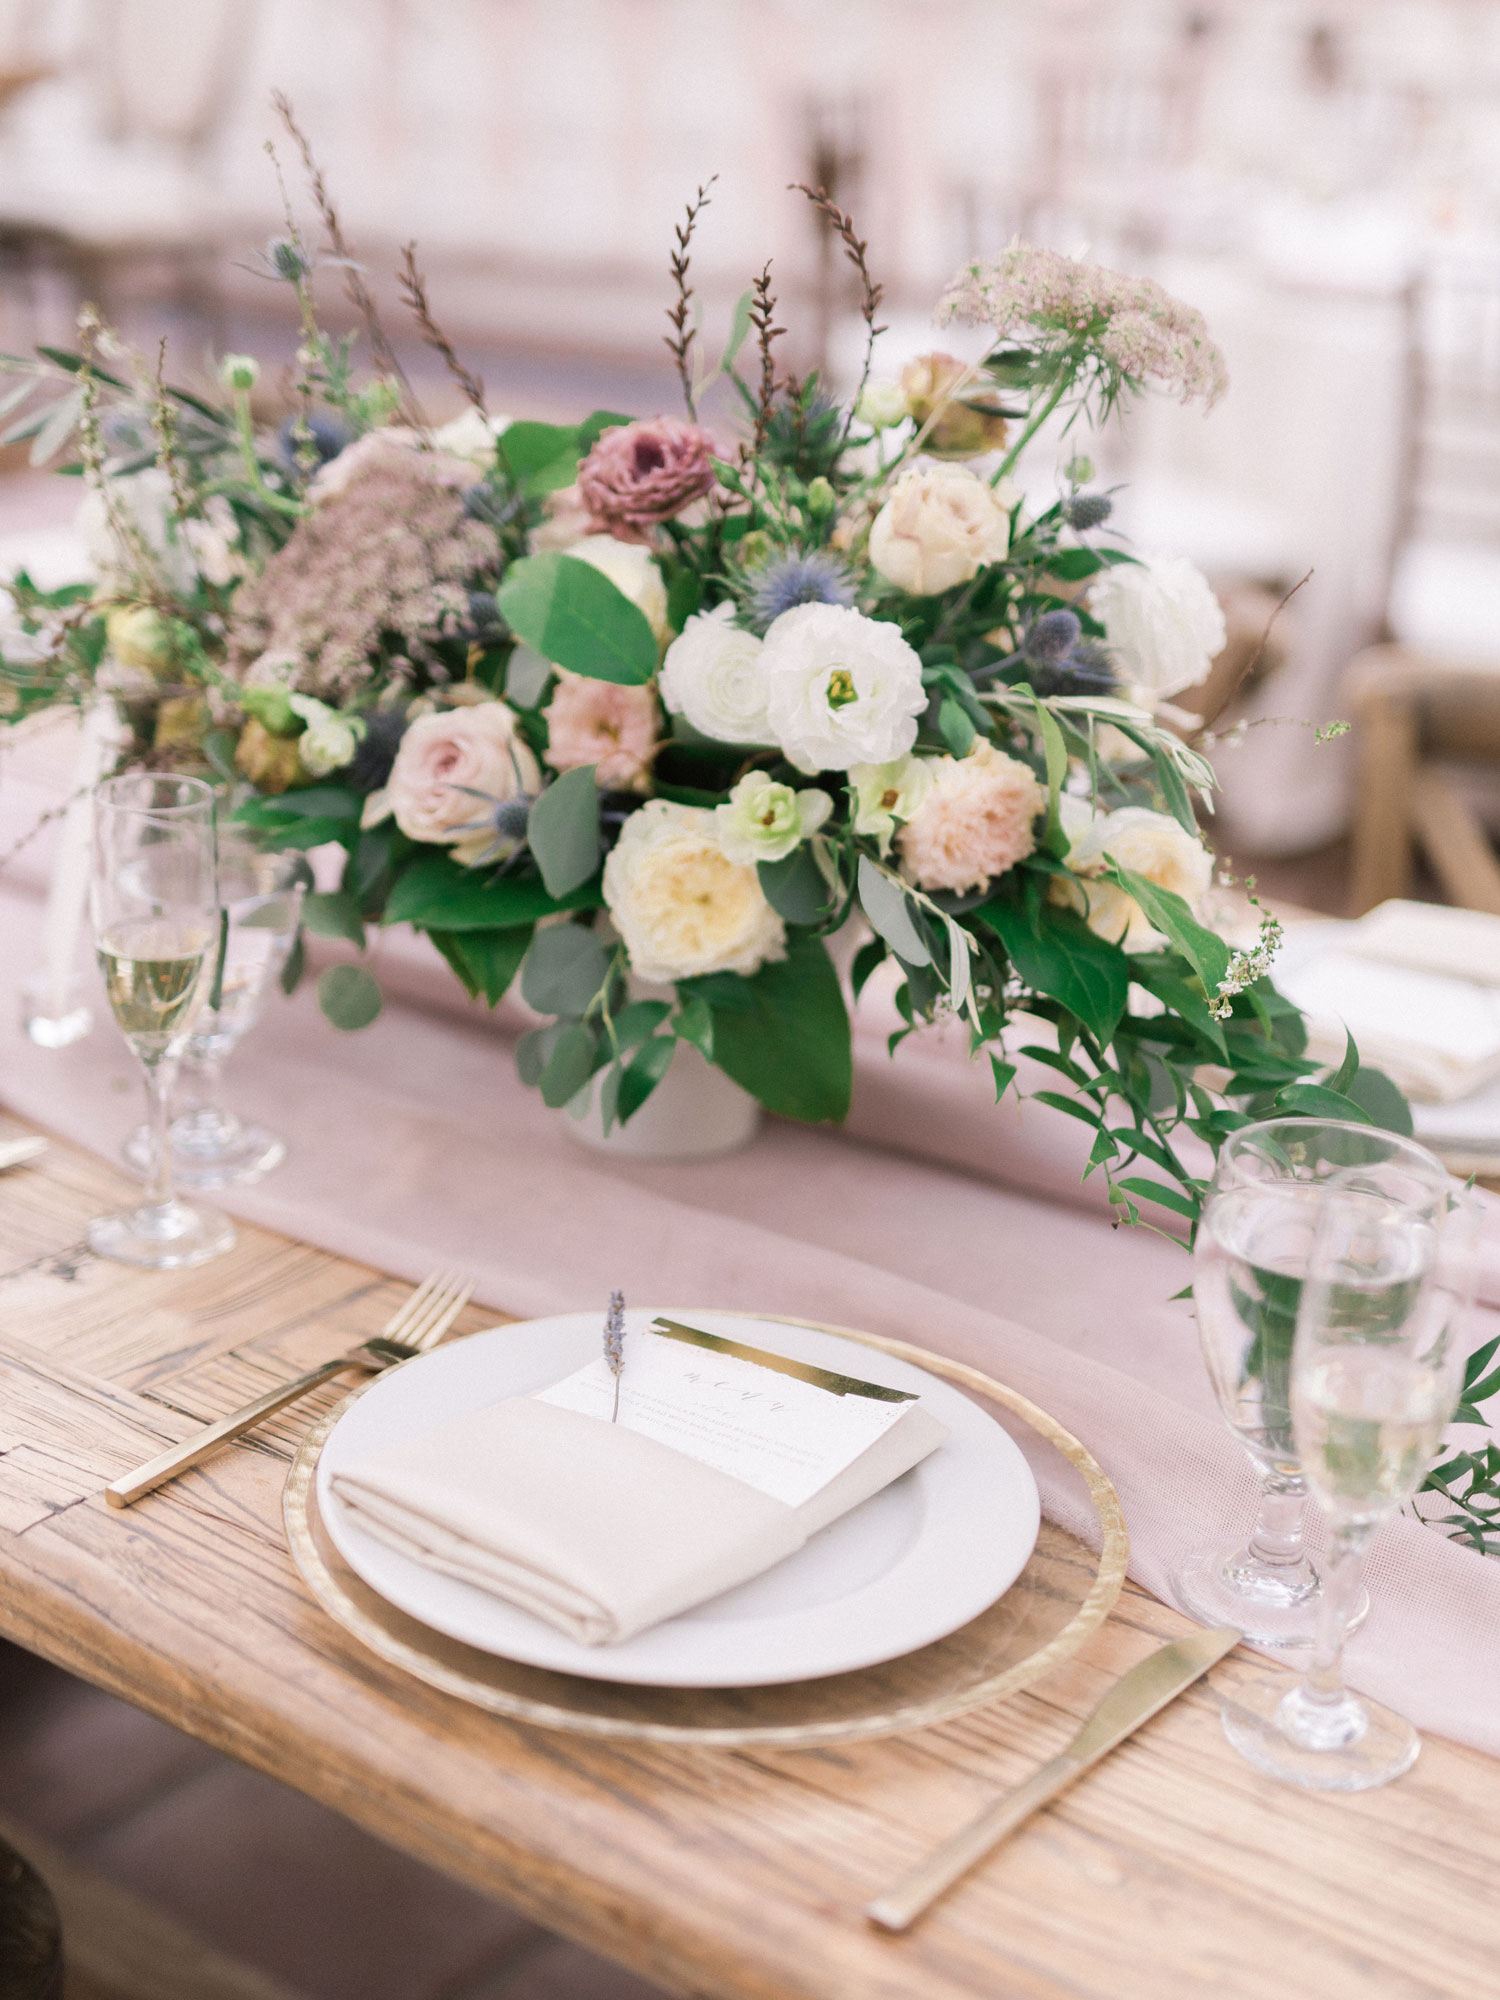 garden wedding ideas wood reception table low centerpiece garden flowers loose arrangement